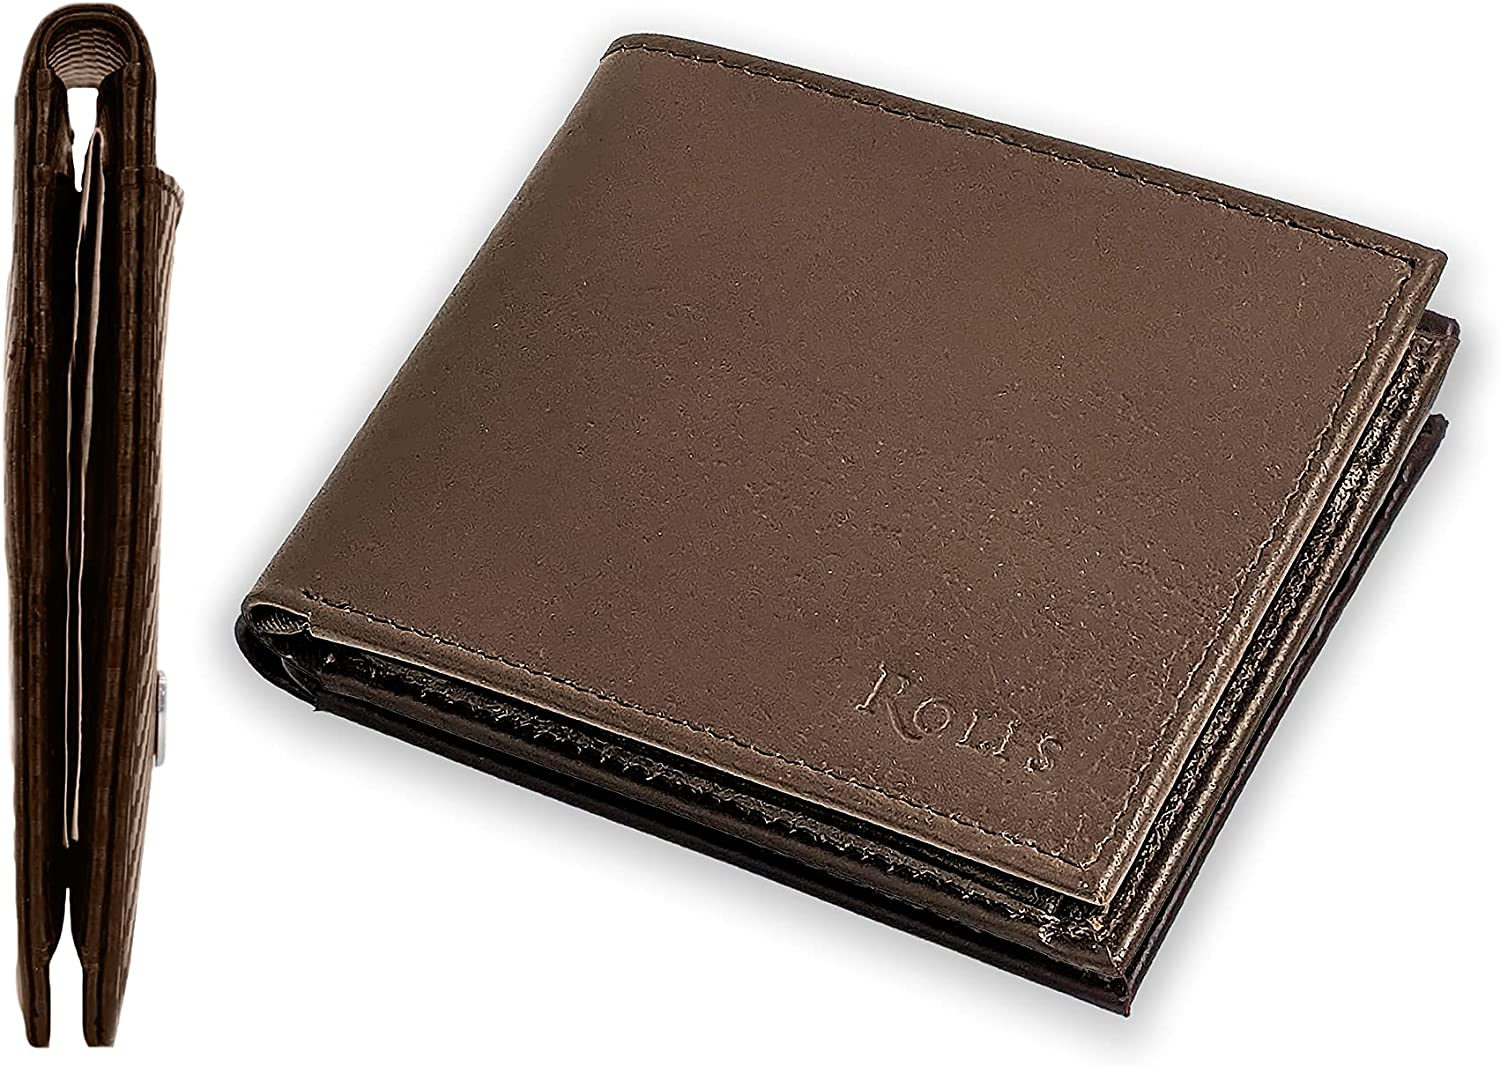 Rolfs Premium Leather Wallets for Men with Card Holder, Bifold Minimalist Wallet for Men;Slim Wallet in a Gift Box - Brown, Billfold with Coin Pocket